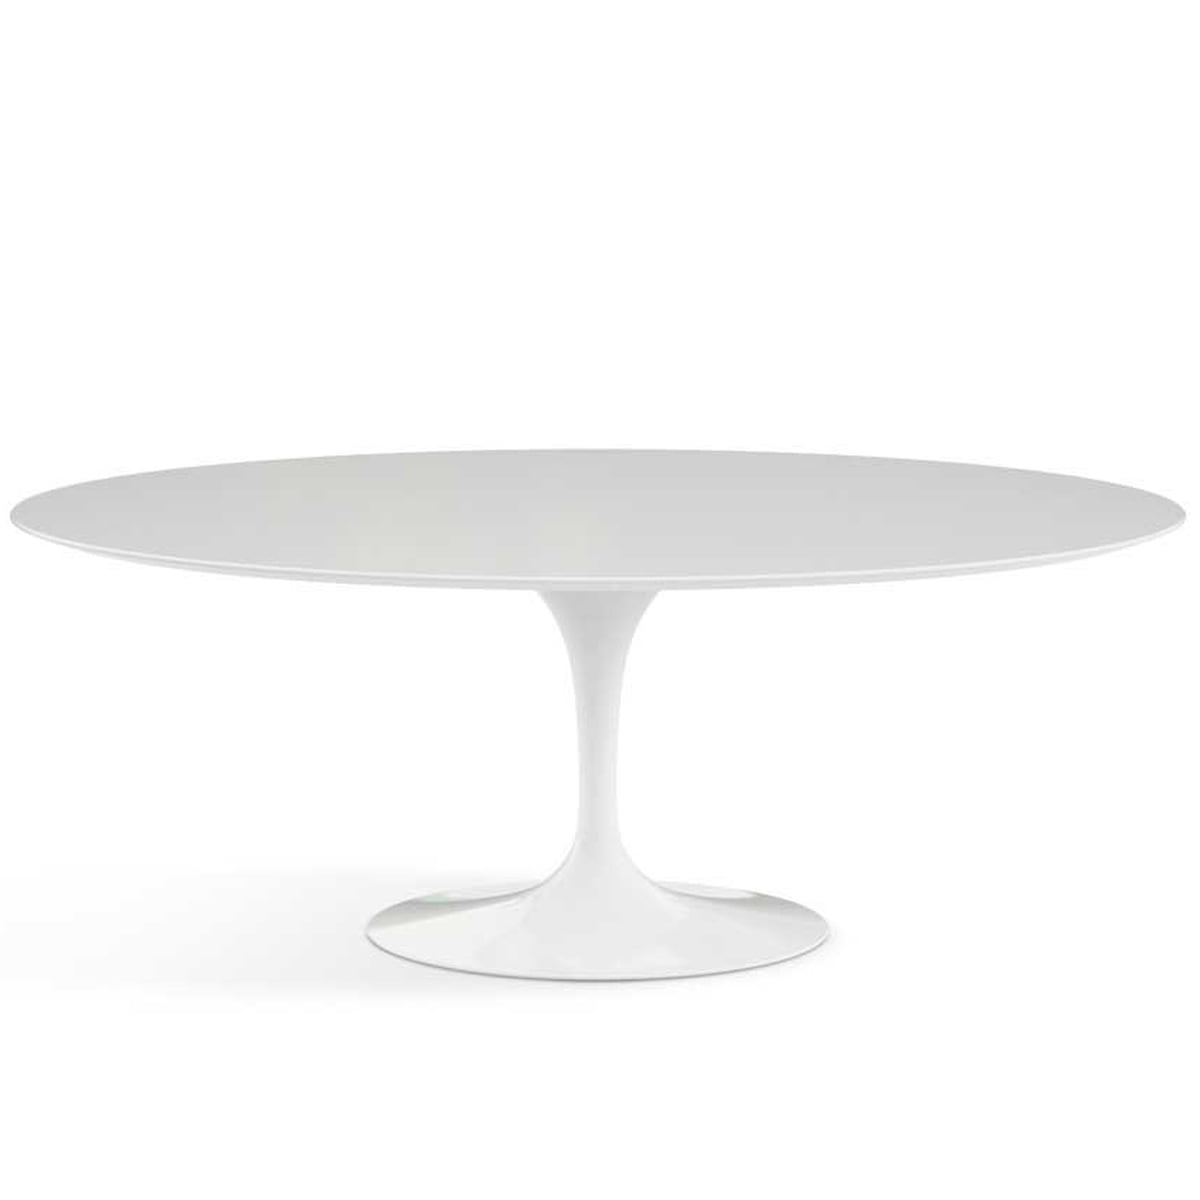 Esstisch modern oval  saarinen oval dining table, tulip table oval marble reproduction ...